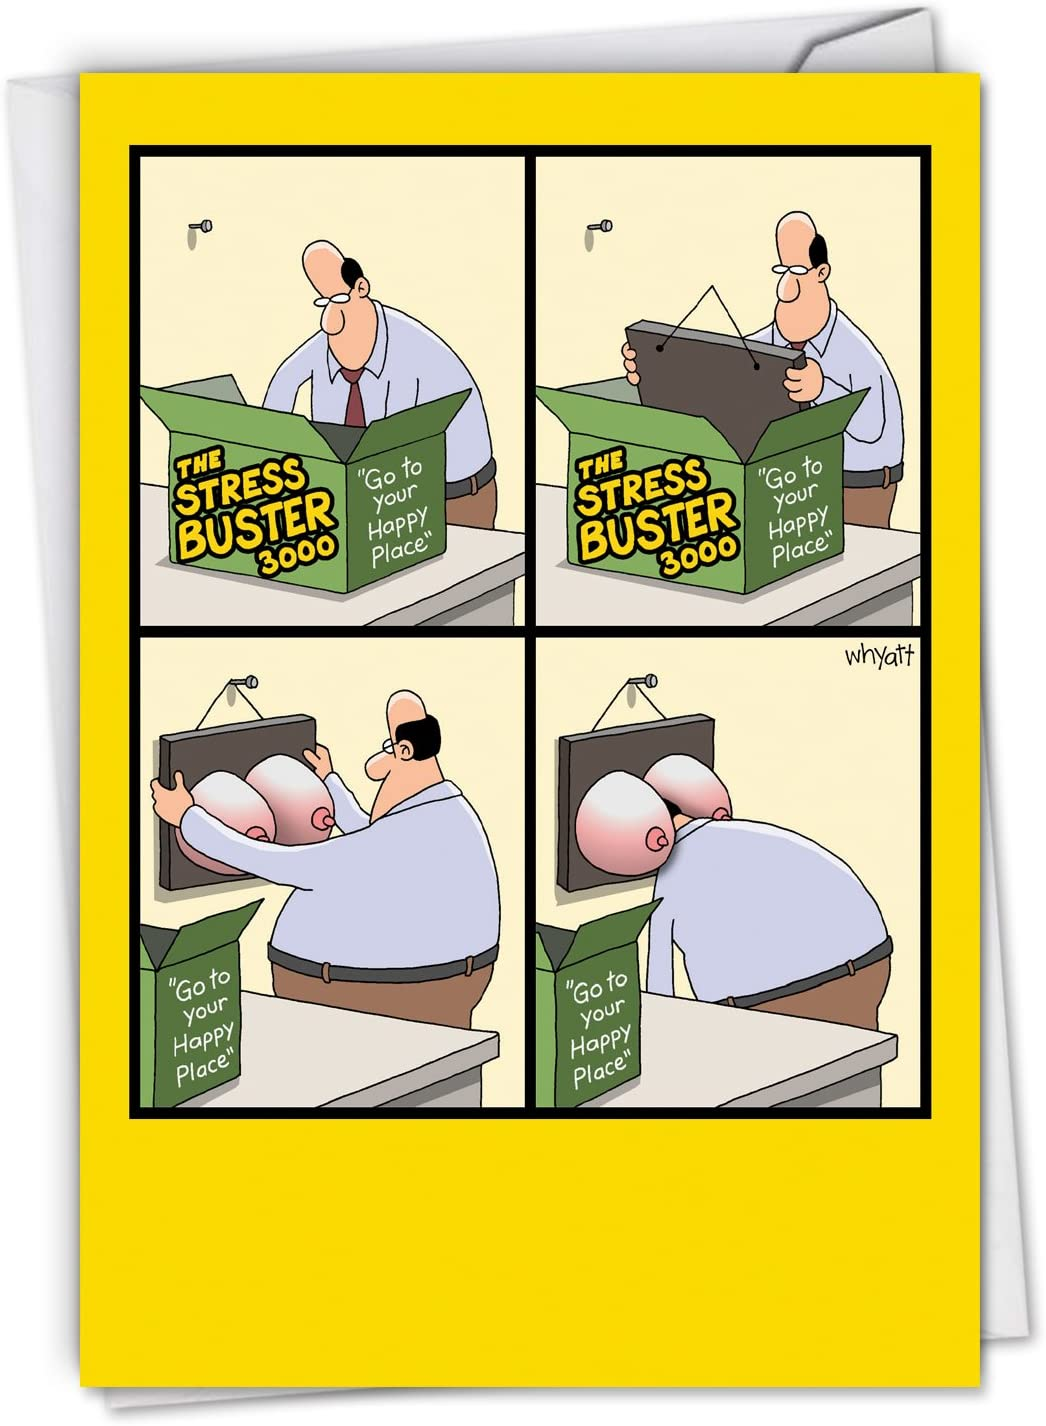 Amazon Com Stress Buster Funny Birthday Greeting Card See A Classic Middle Aged Man Go To His Happy Place With Envelope C4170bdg Office Products